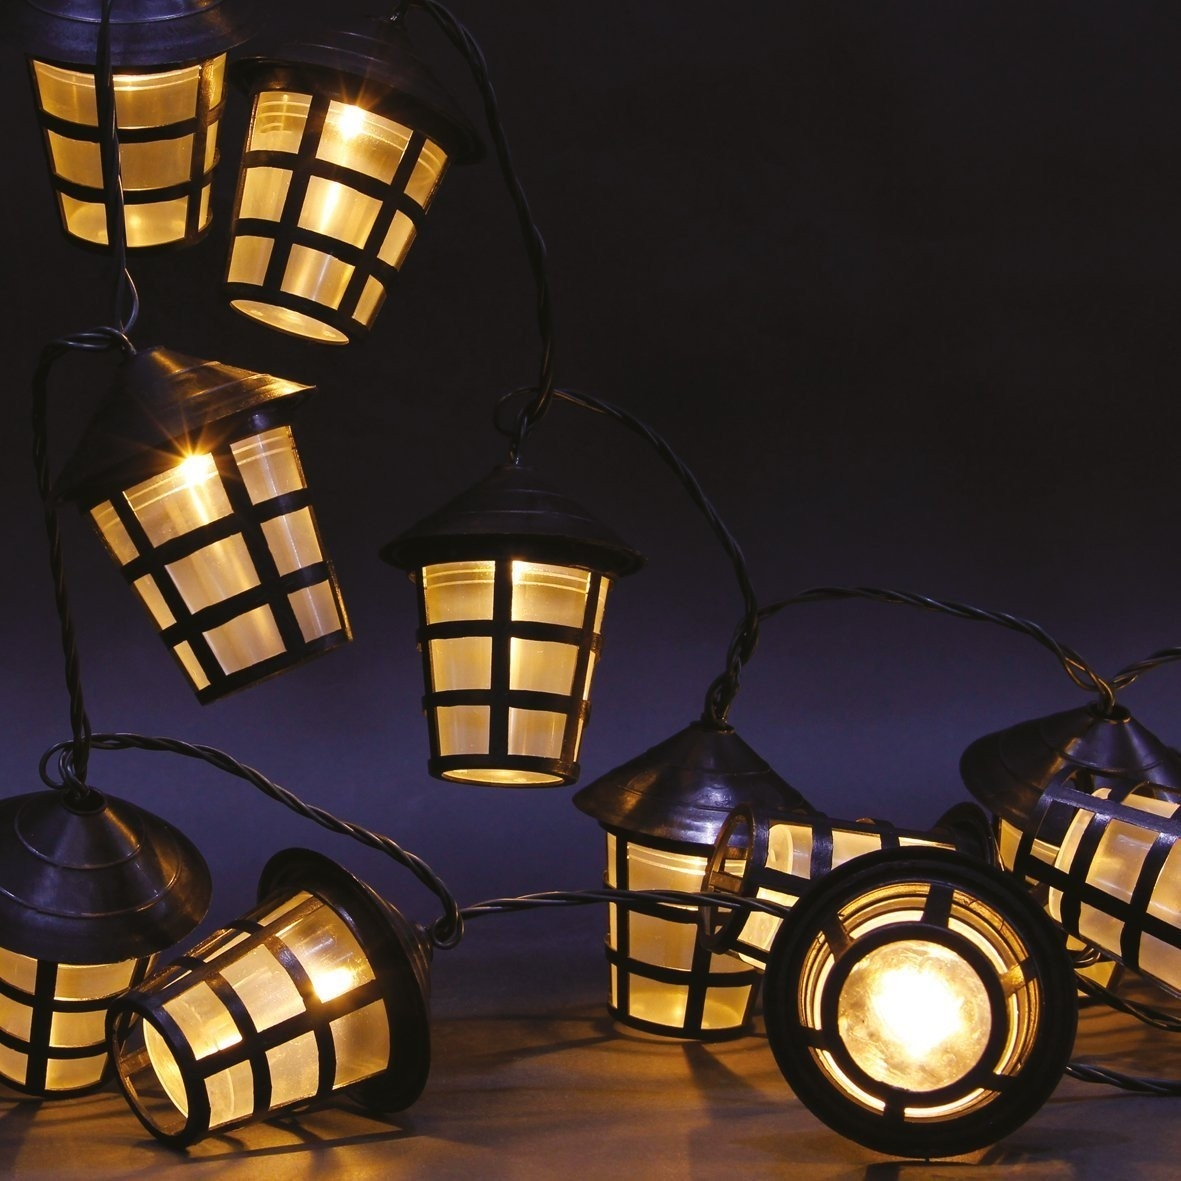 70 Warm White Led Garden Lantern String Lights | This Is It Stores Uk Regarding Outdoor Lanterns With Led Lights (View 11 of 20)